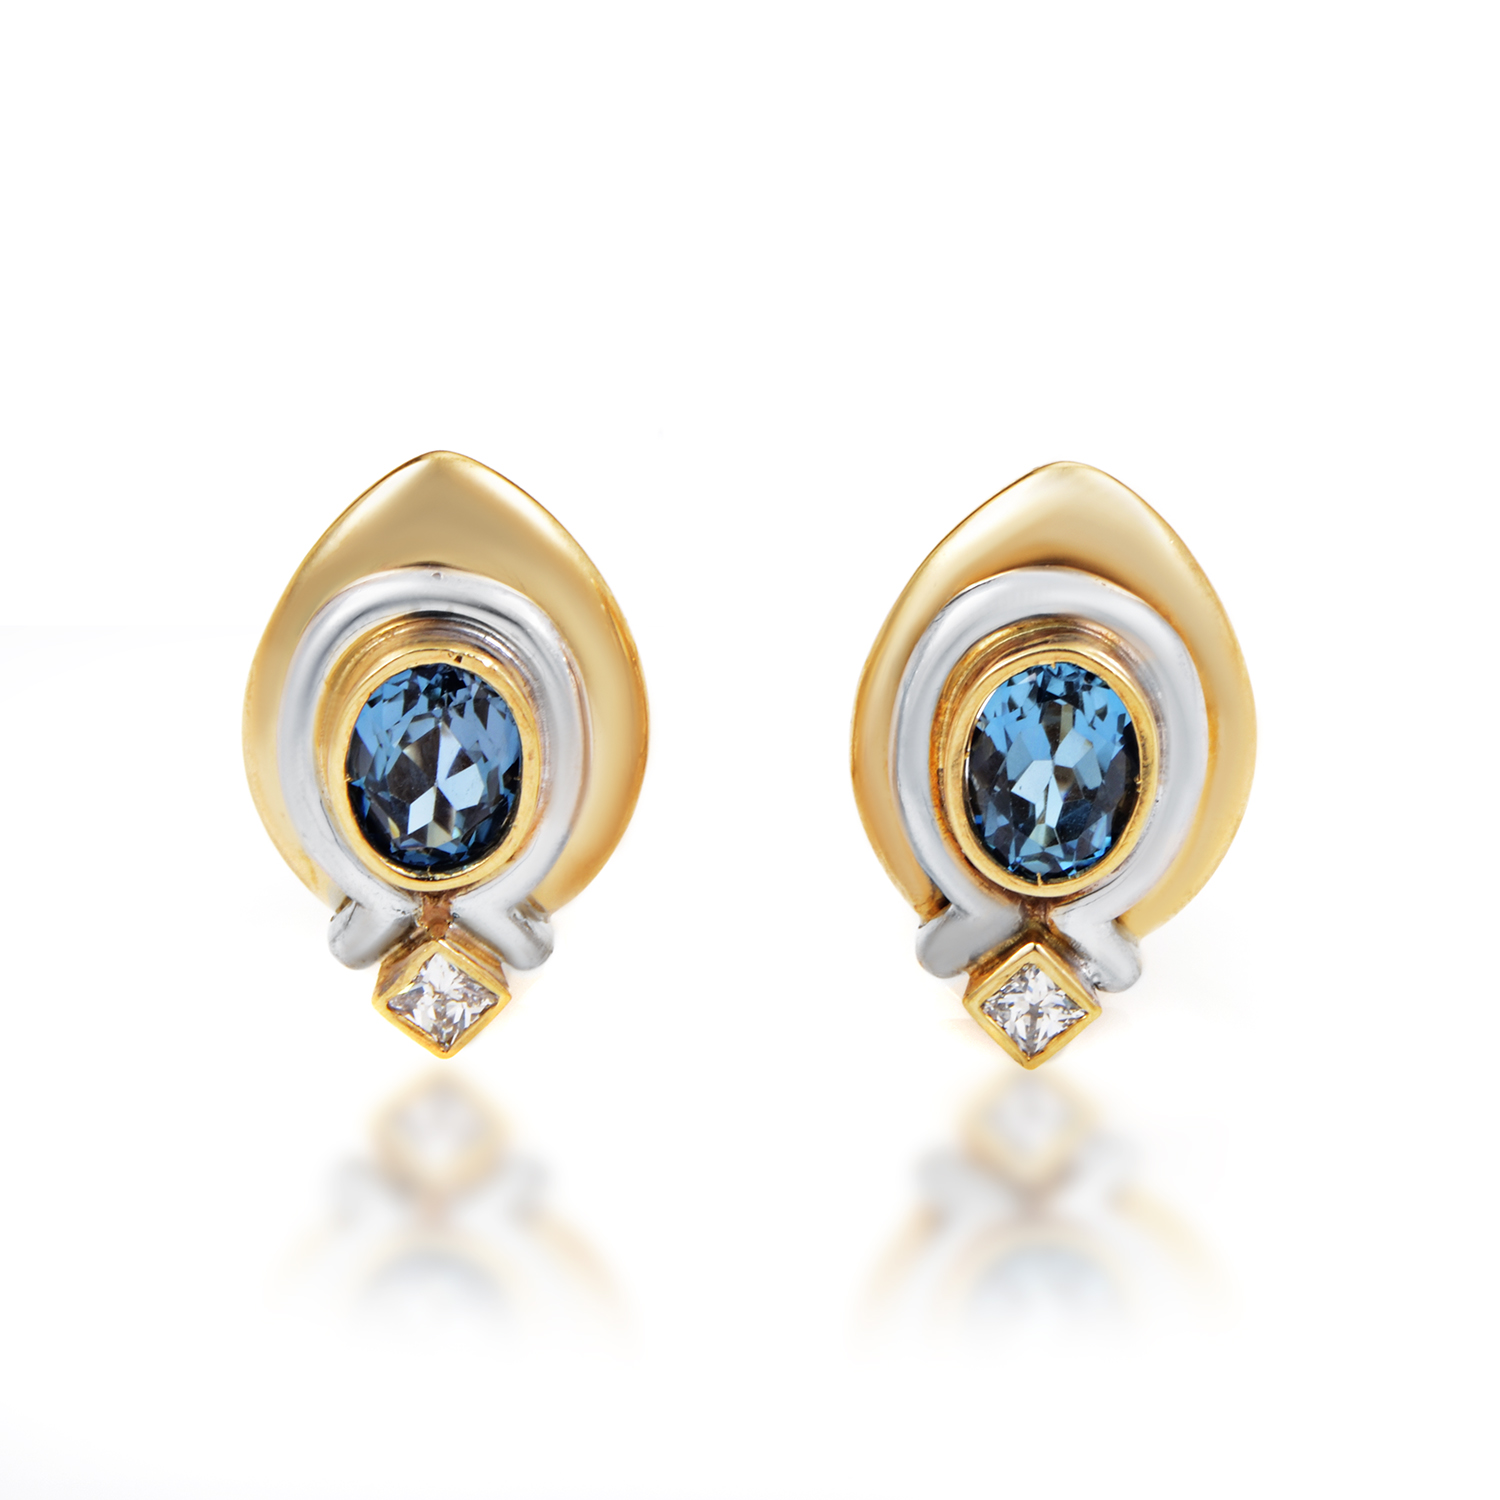 Italian Collection Women's 18K Multi-Tone Gold Diamond & Topaz Earrings